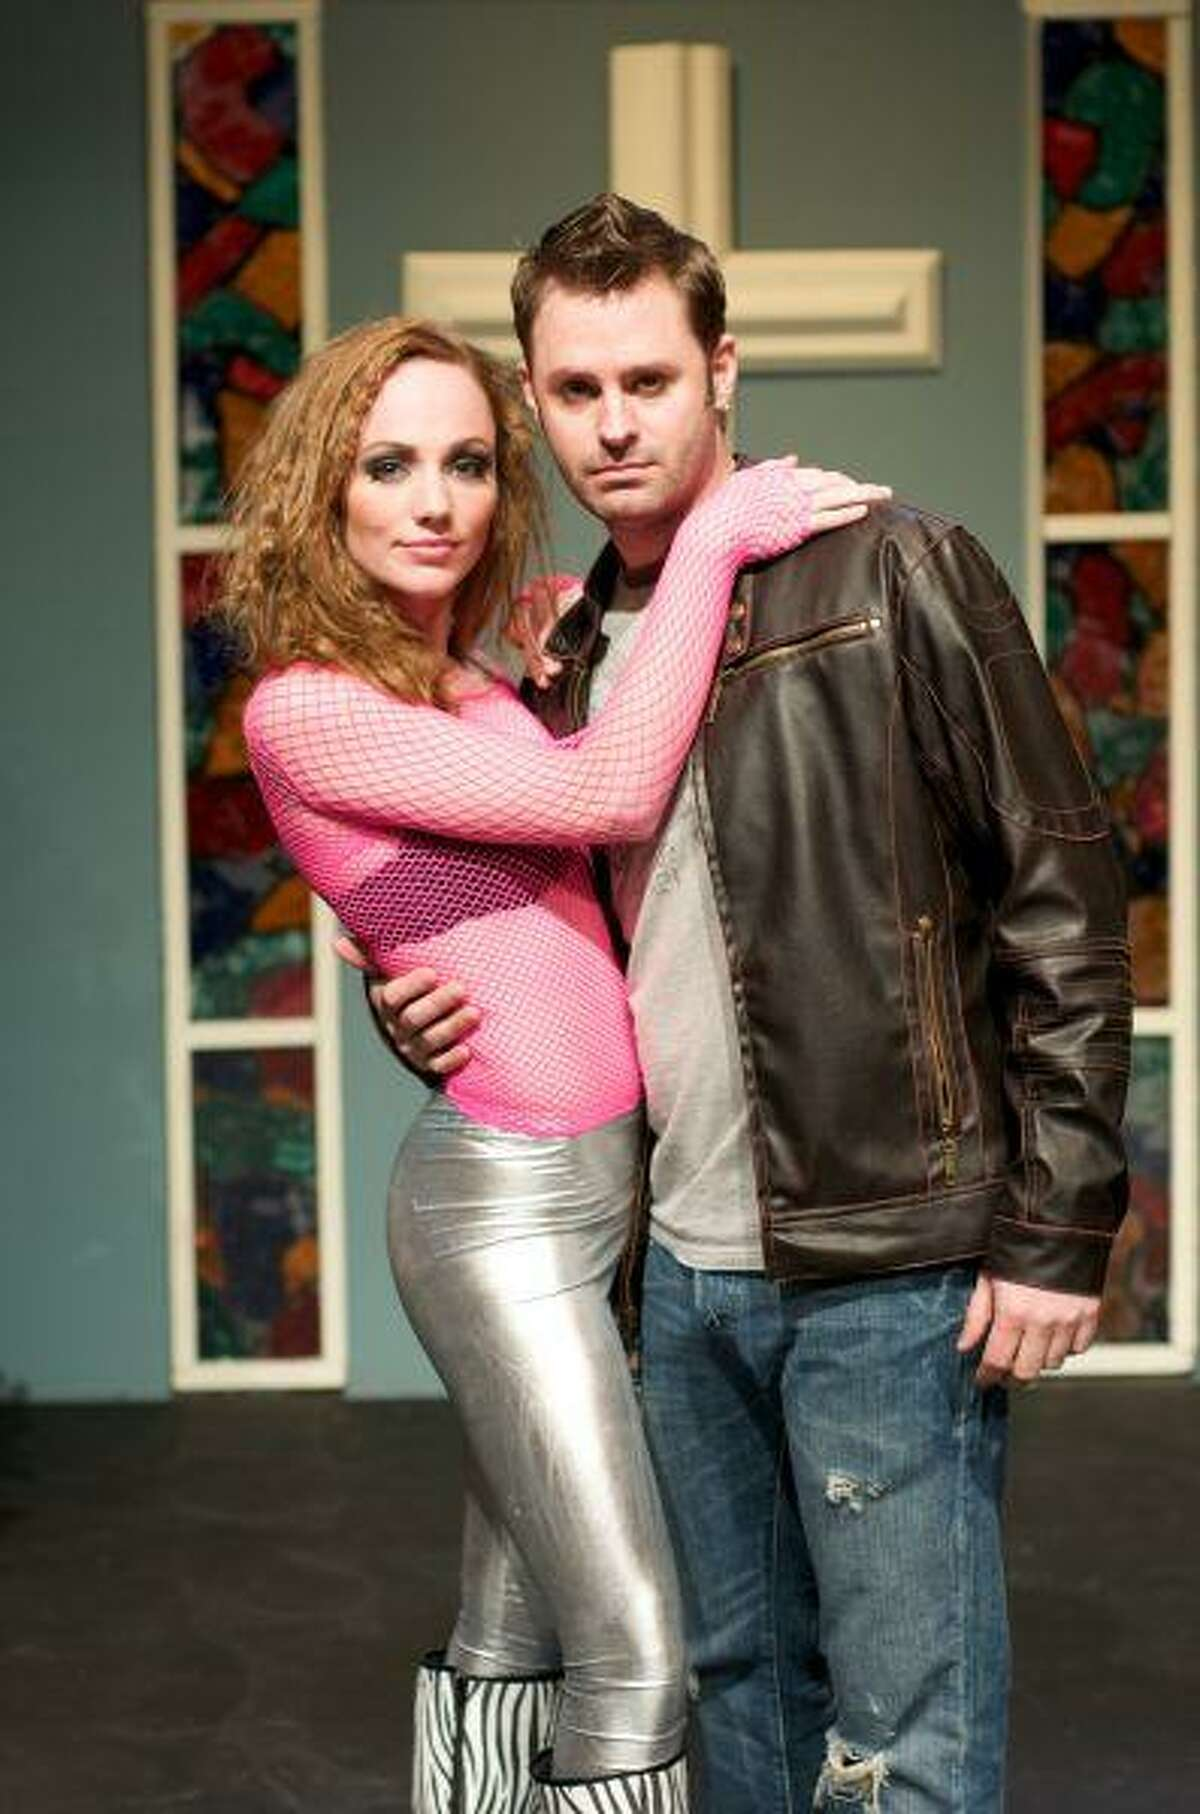 Roger (Brad Goertz), despondent from the death of his girlfriend, finds solace with free-spirited Mimi (Julia Hester), a neighbor in his lower east side apartment, as they struggle to pick up the pieces of their broken lives.